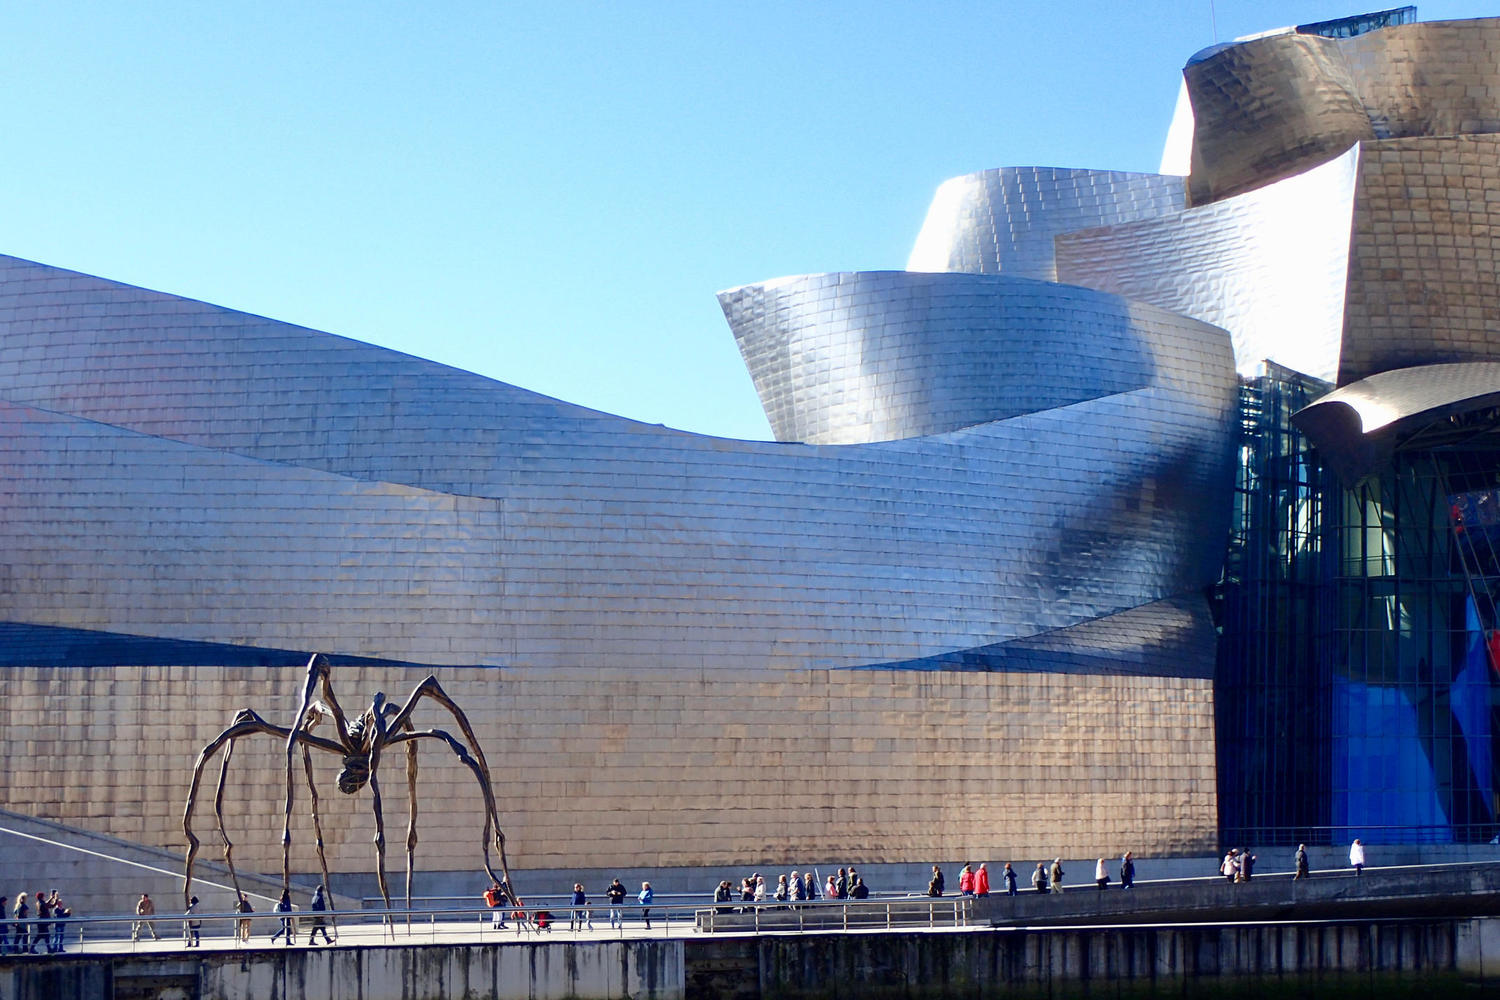 The famous spider sculpture outside of the Guggenheim, Bilbao